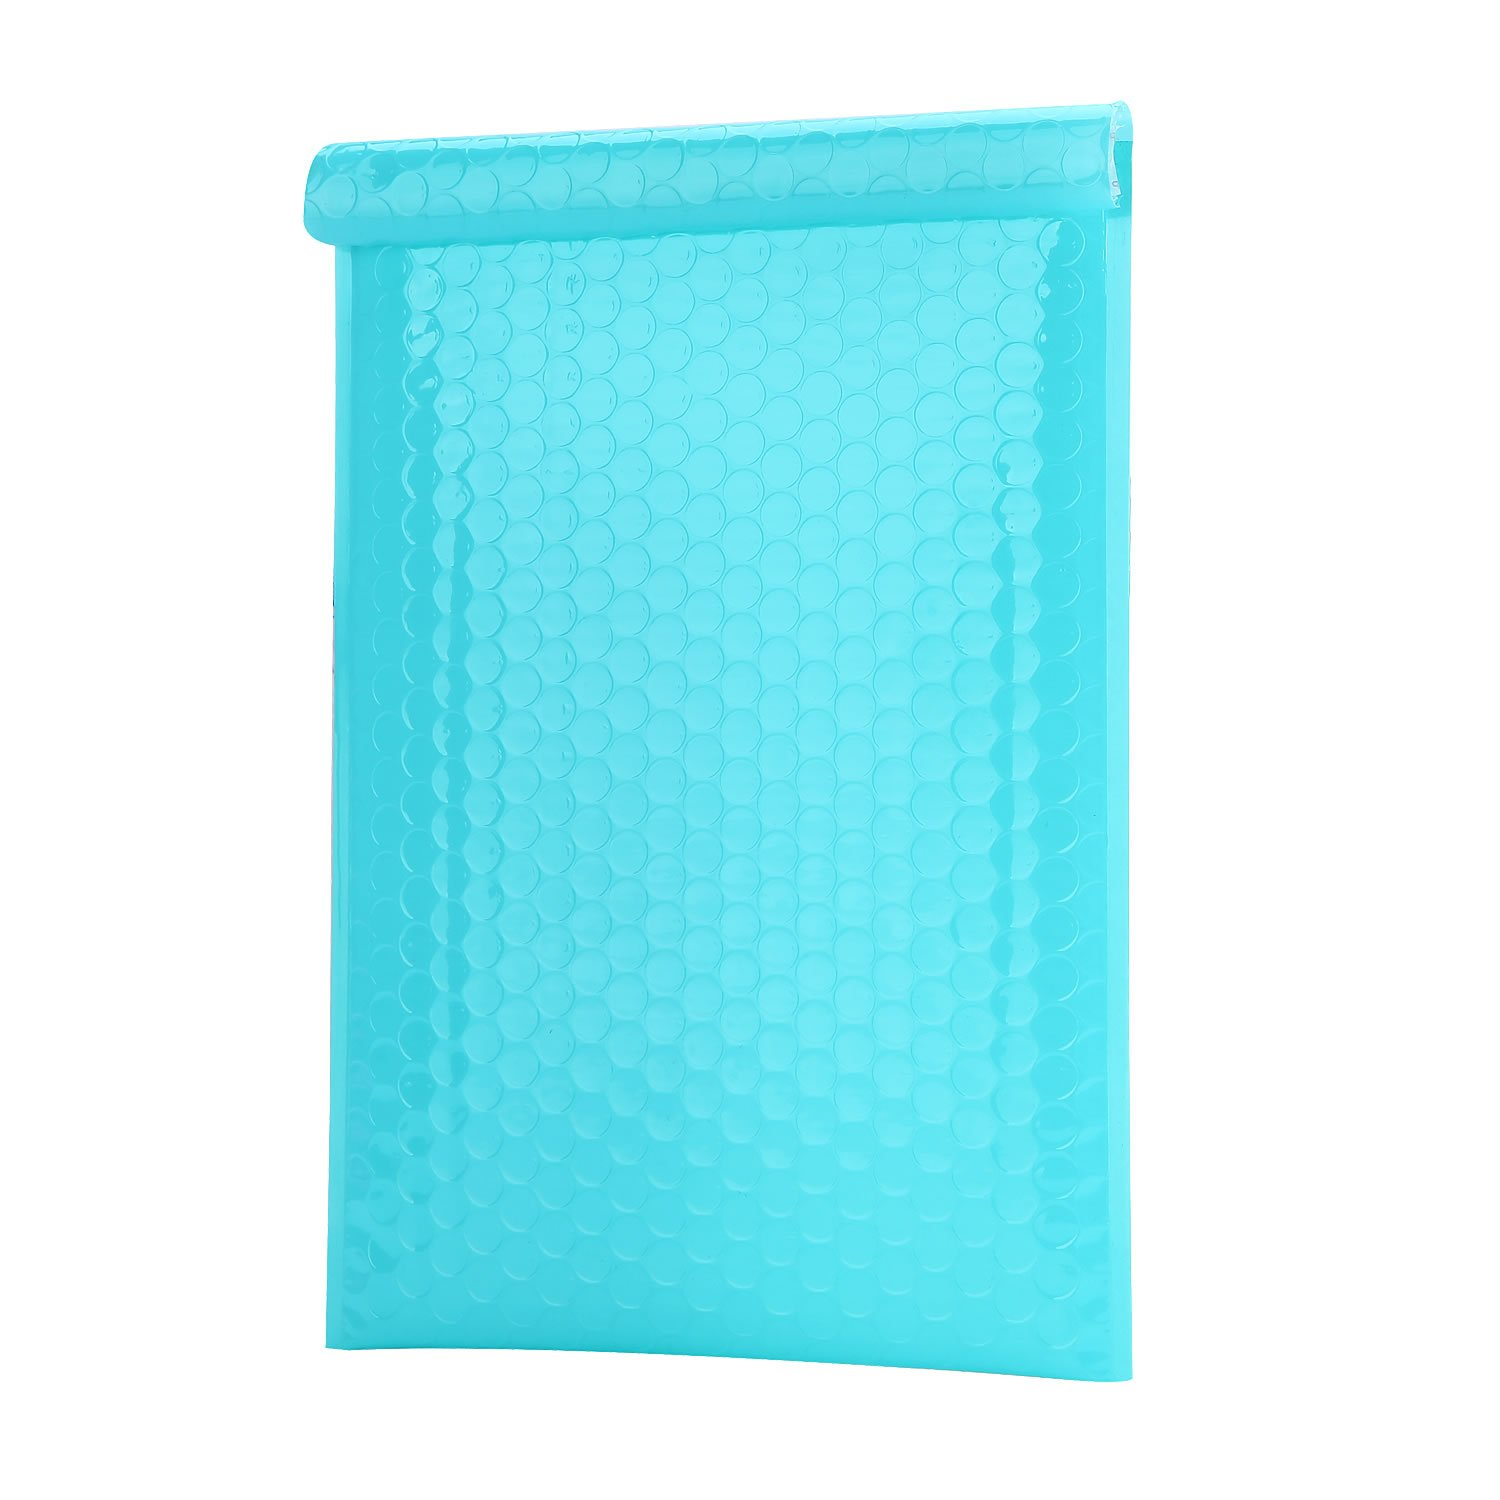 PackaPro #0 Poly Self-Seal Bubble Mailer 6X10 Special Extra Wide (actual size 7X10) Padded Envelopes Pack of 50 - Teal